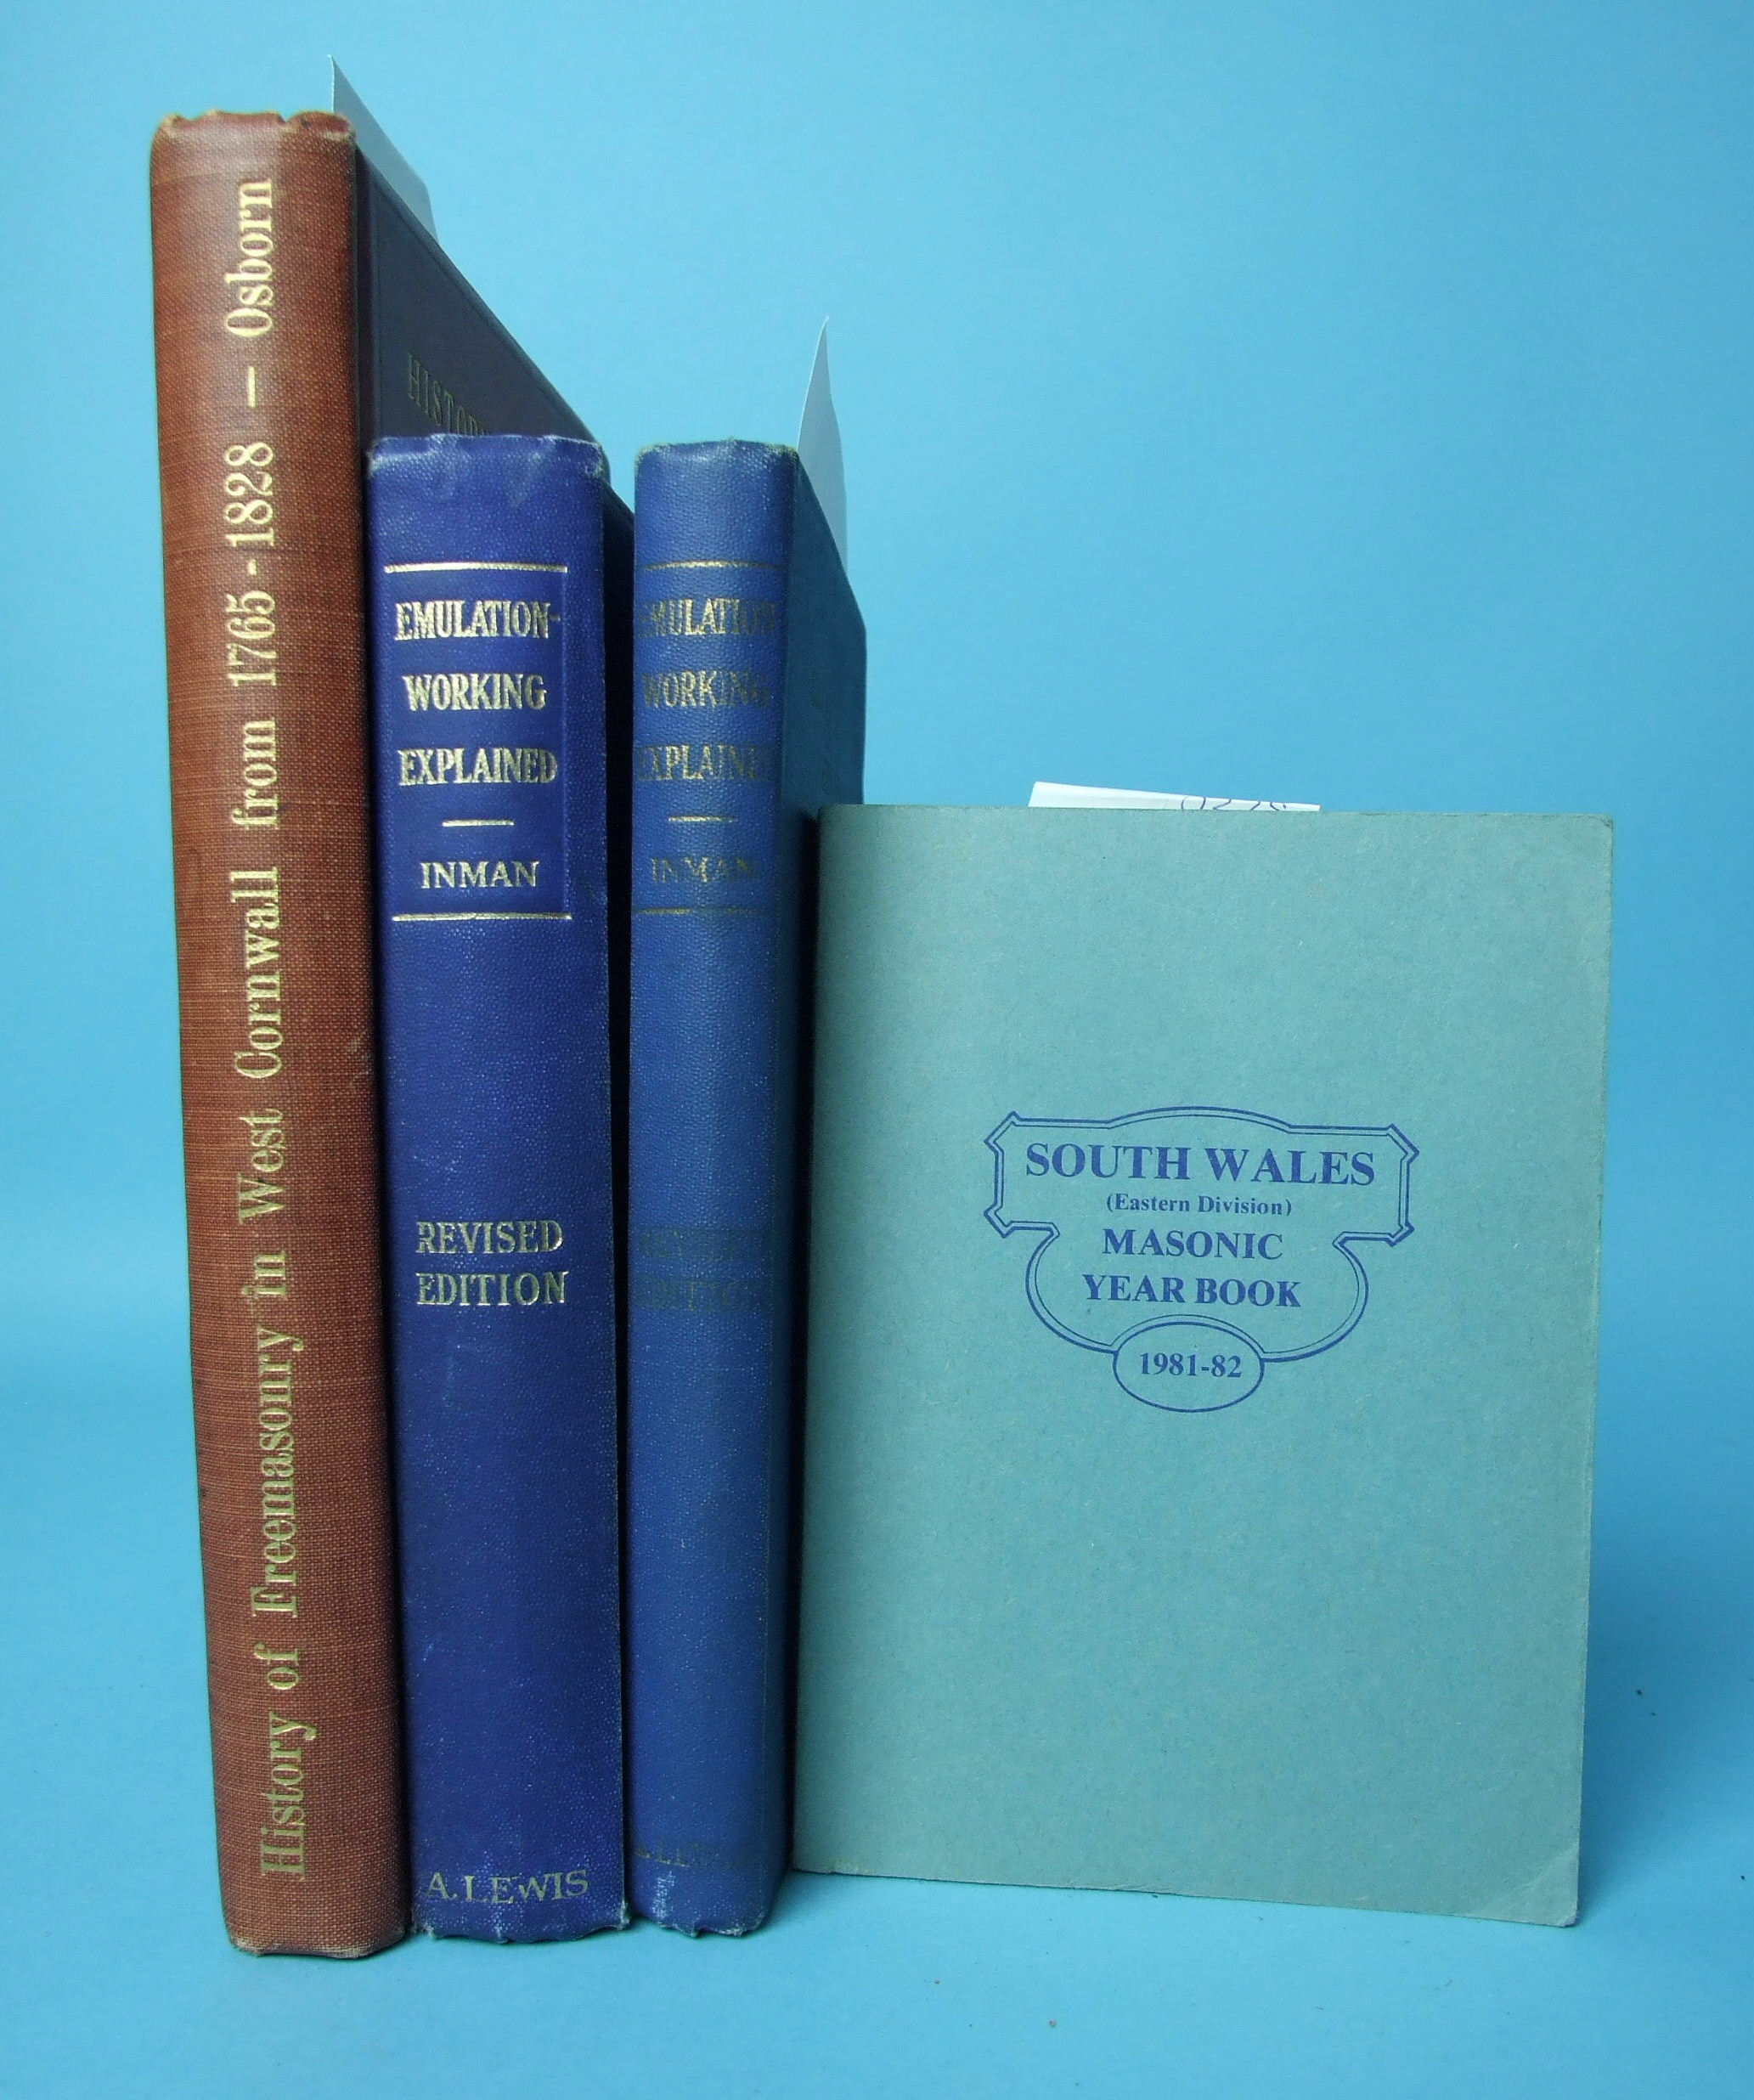 Lot 72 - Osborn (Joseph G), History of Freemasonry in West Cornwall from 1765 to 1828, edn of 400, frontis,